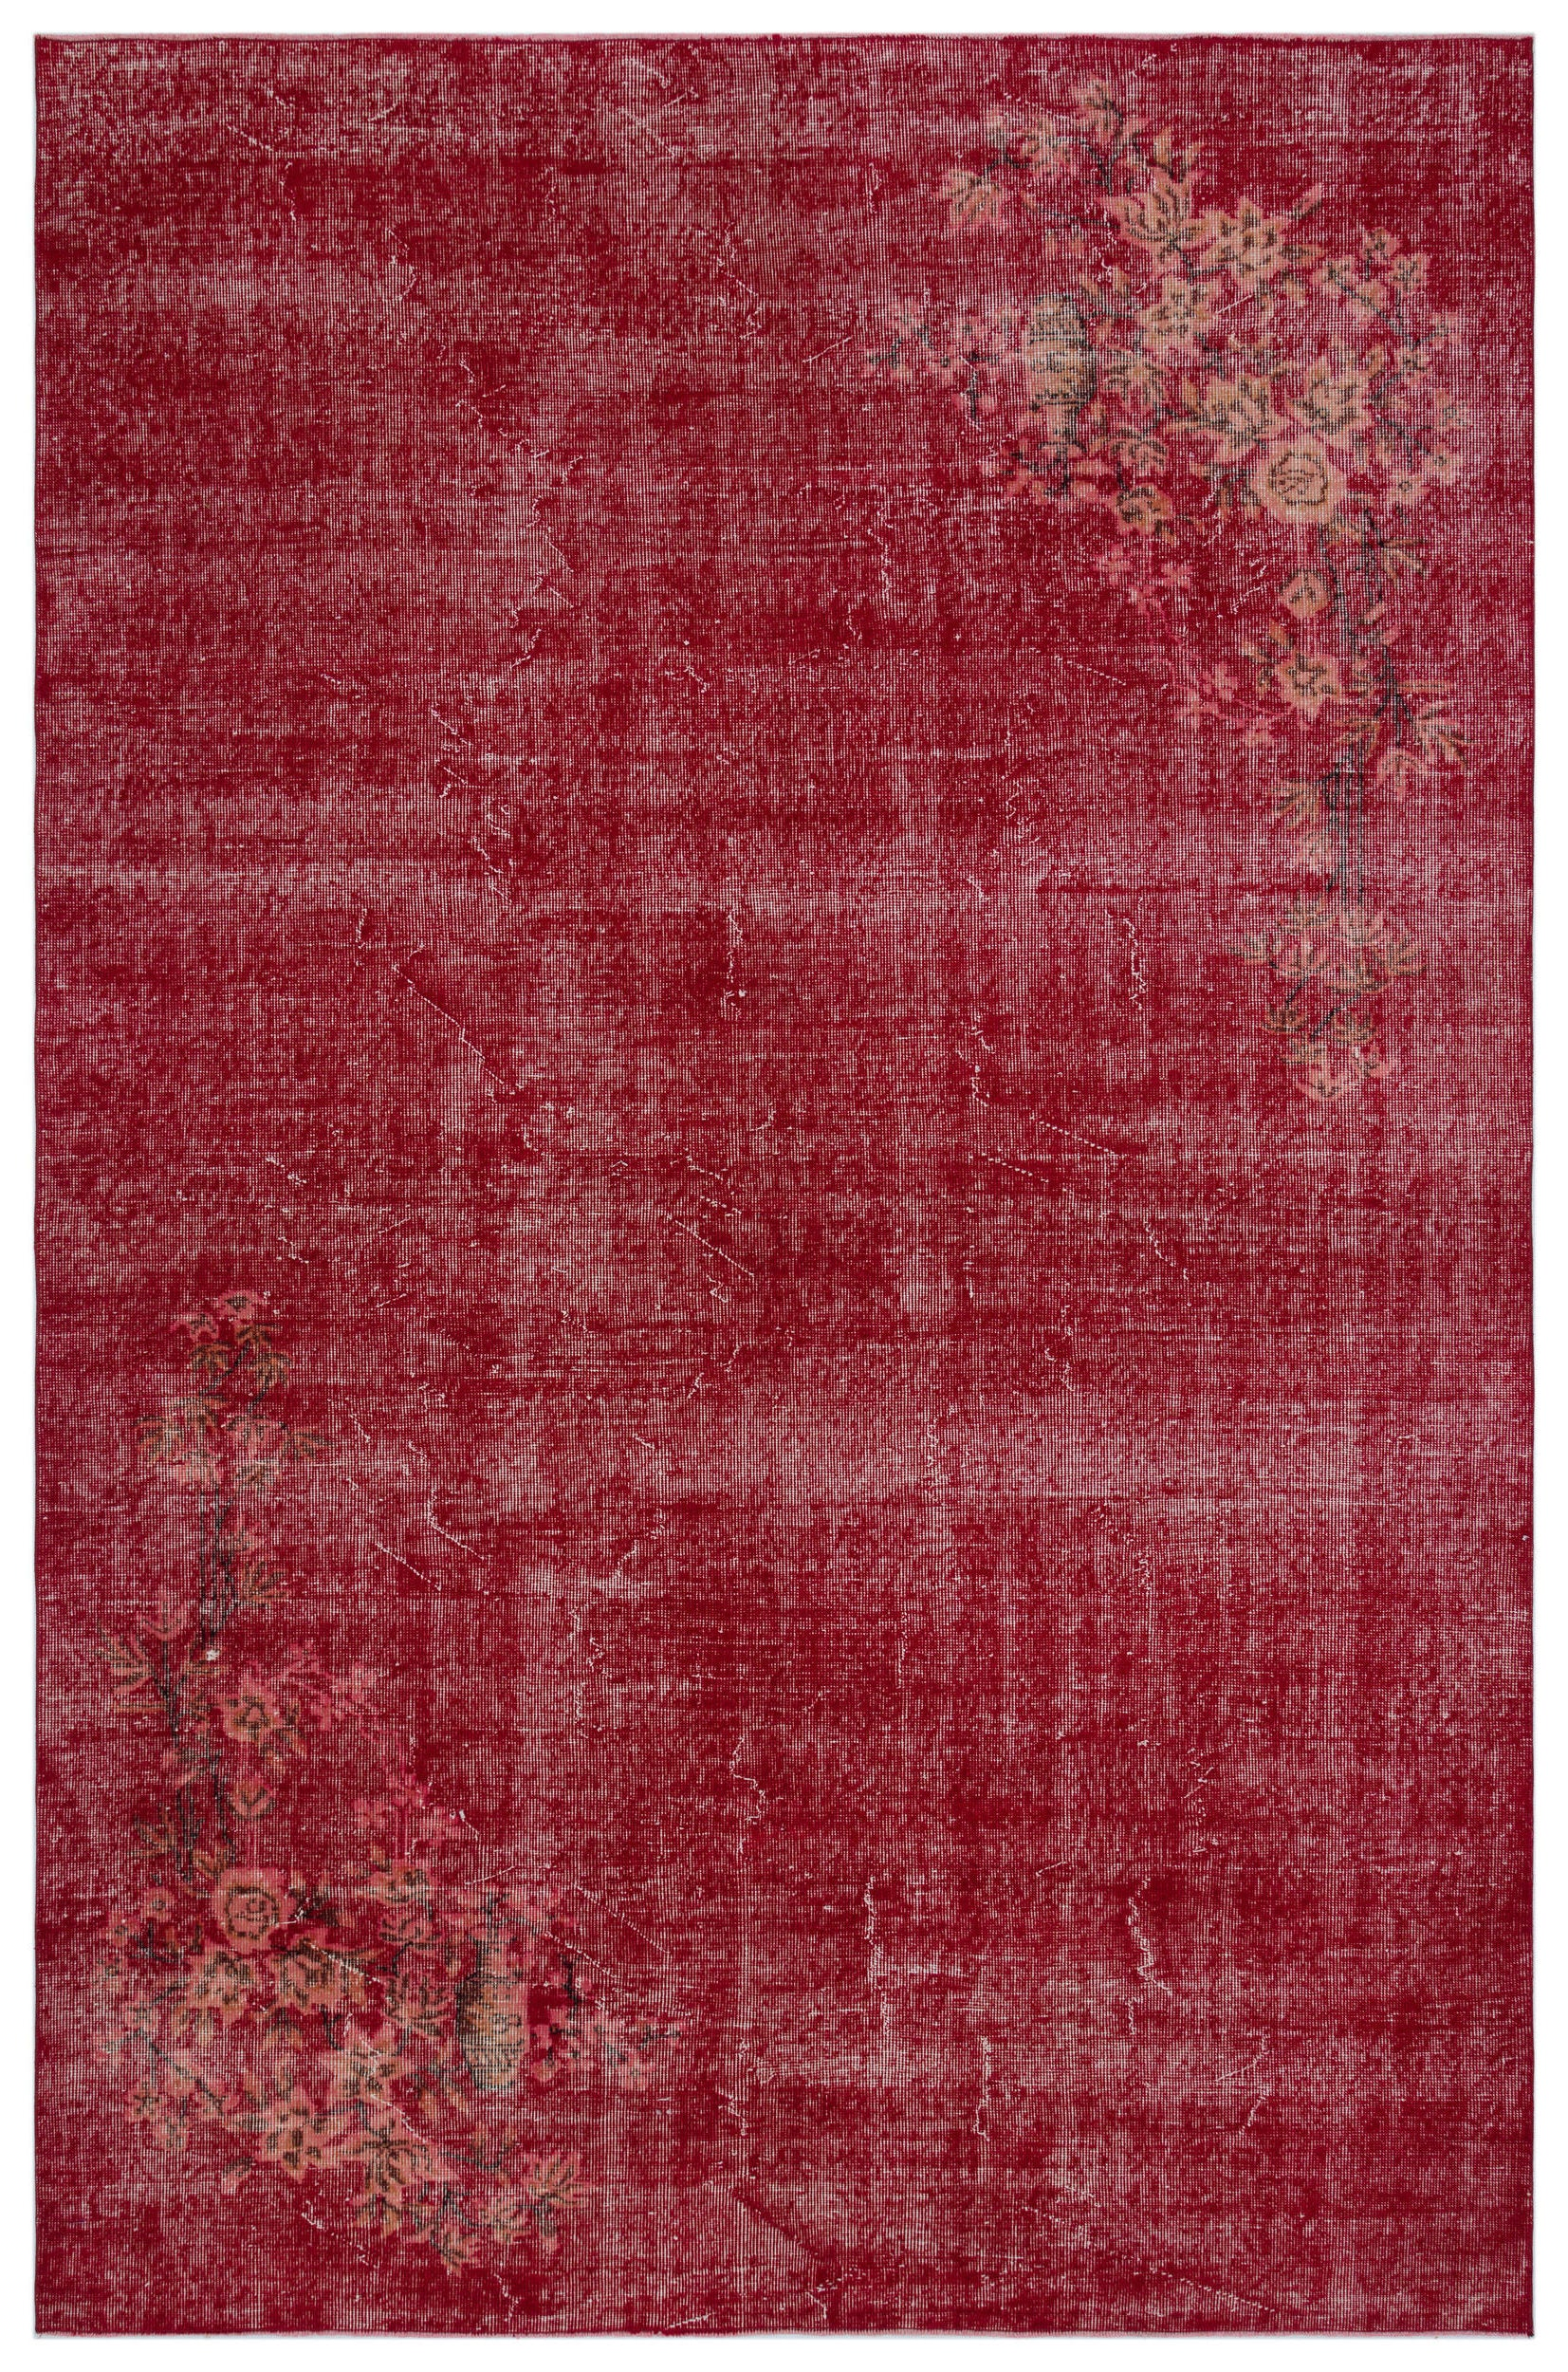 Naturel Over Dyed Vintage Rug 6'9'' x 10'5'' ft 205 x 317 cm